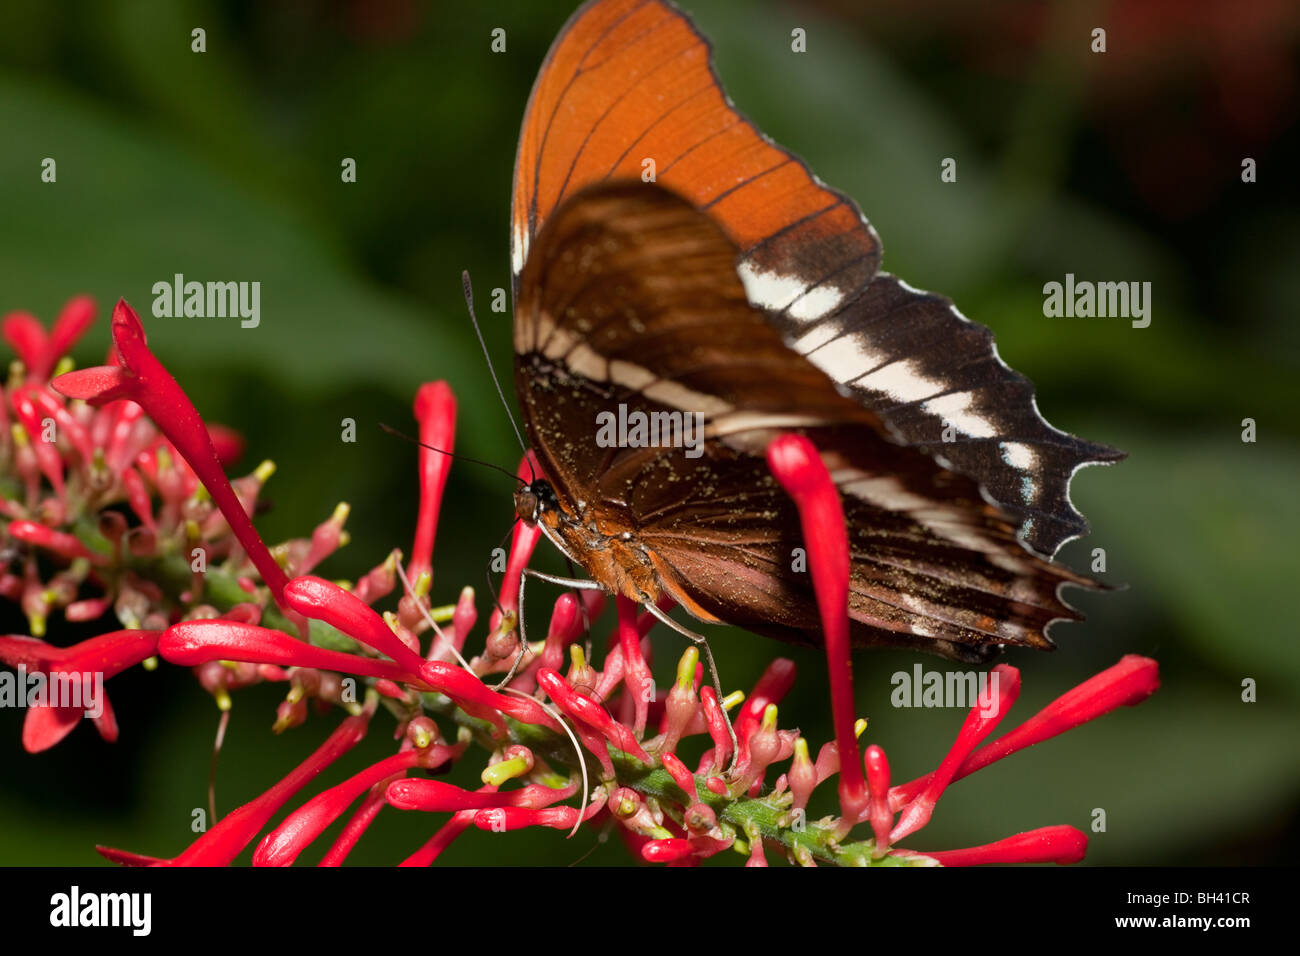 Rusty Embout Papillon Siproeta epaphus Page Photo Stock